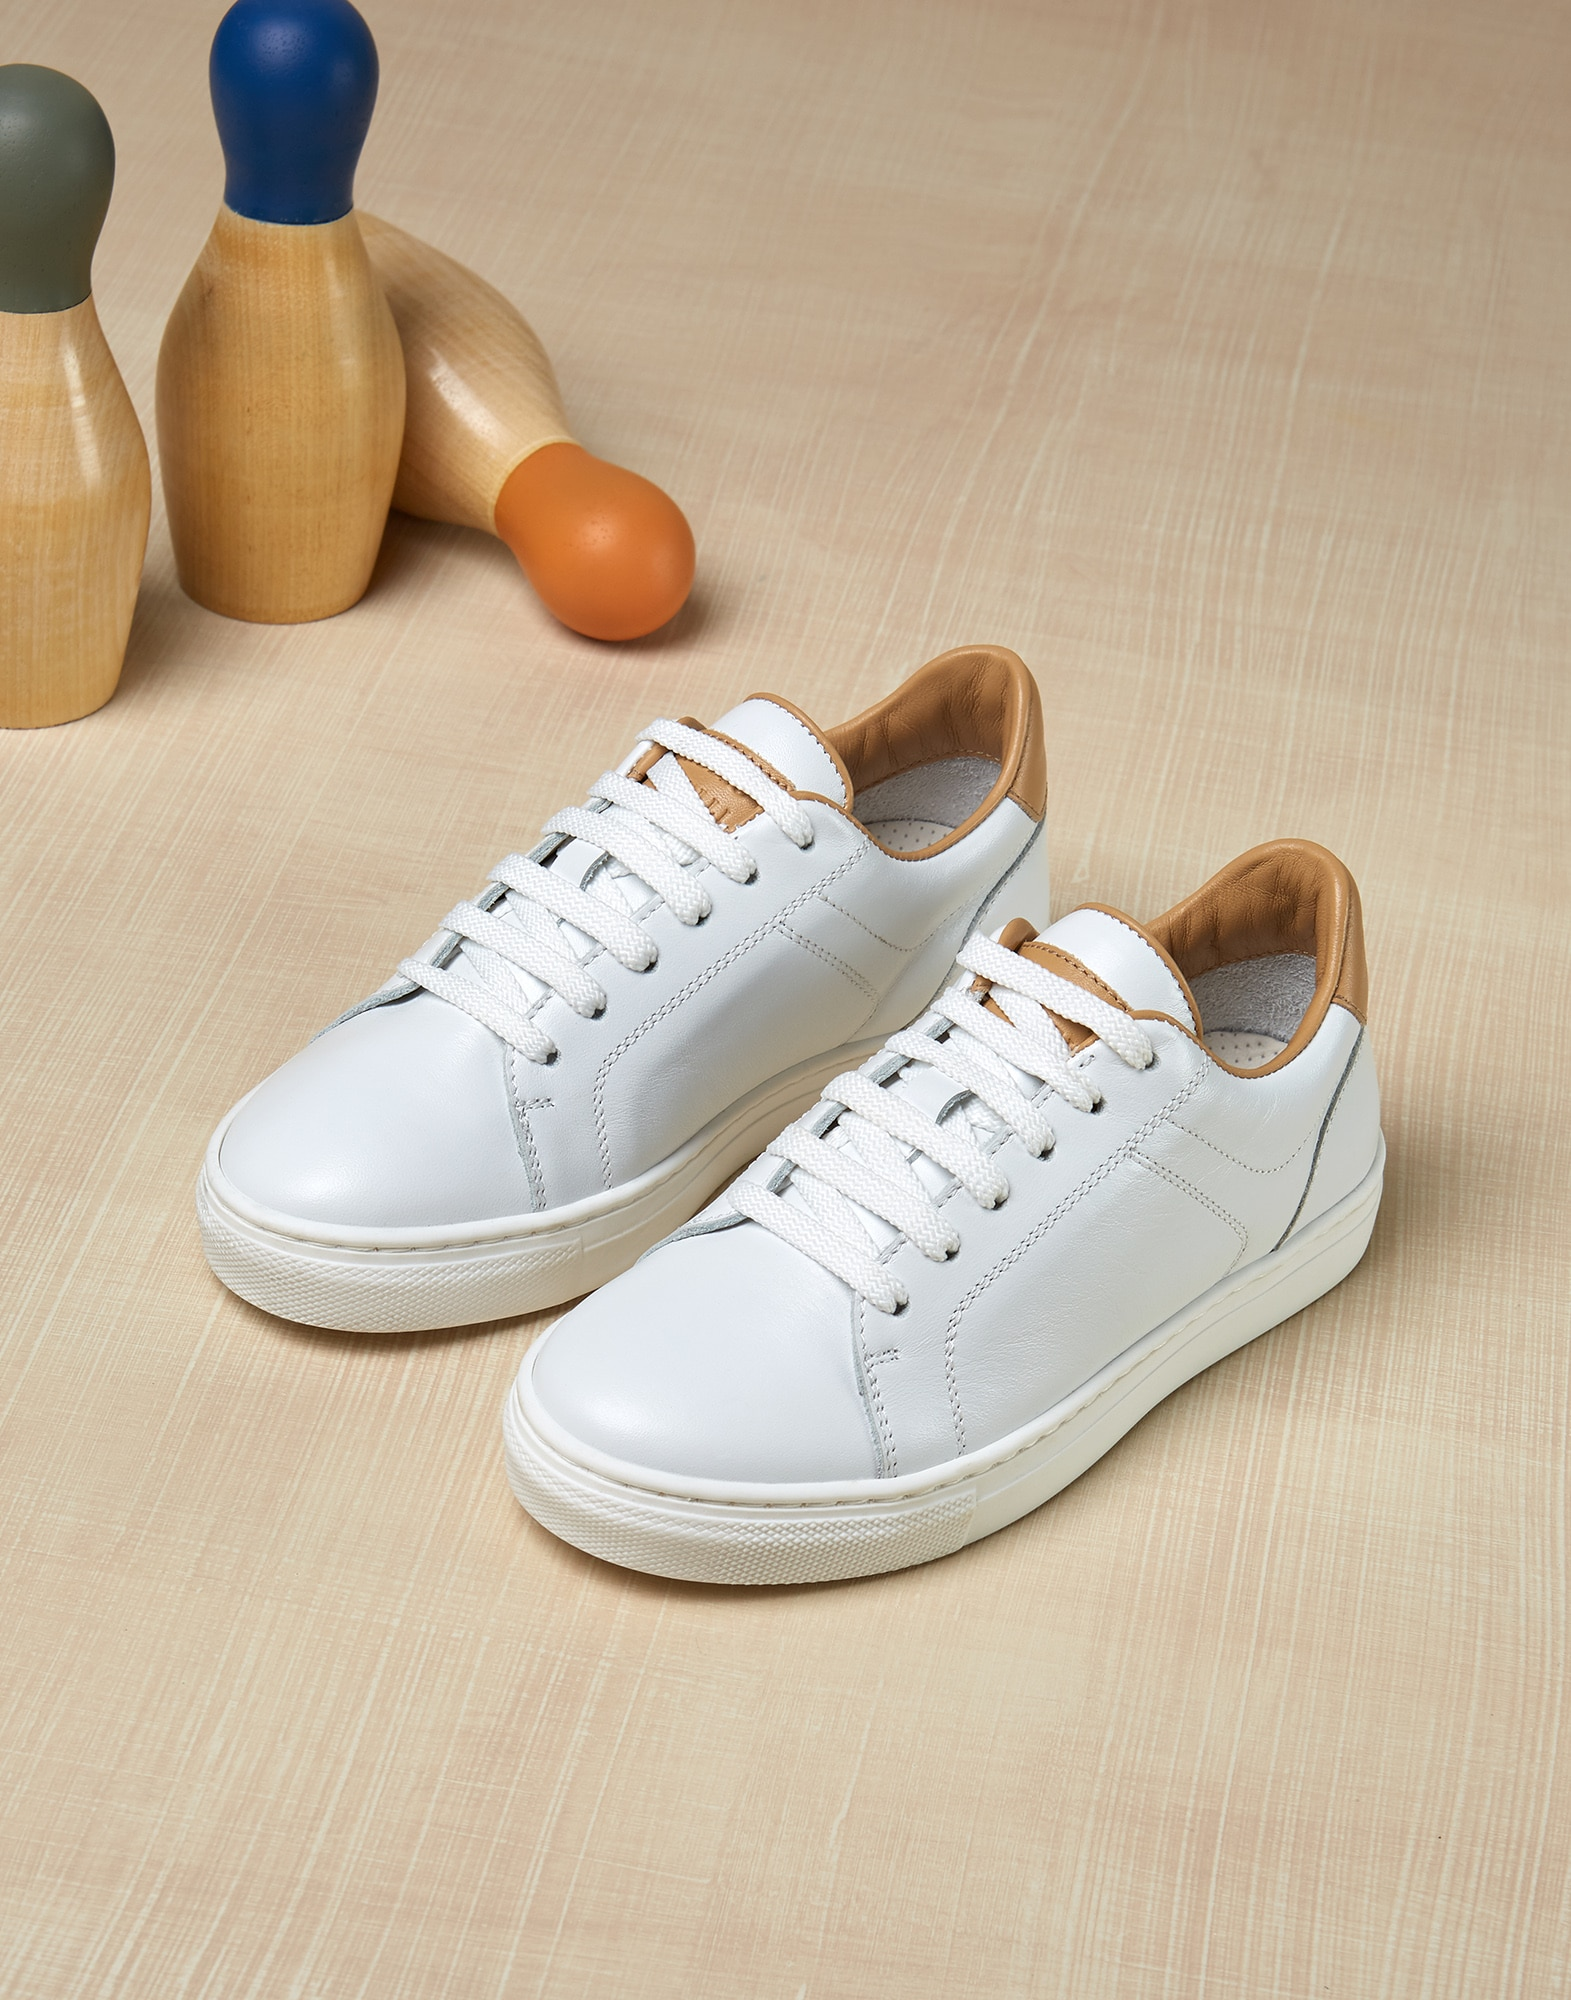 Sneakers White Boy 1 - Brunello Cucinelli